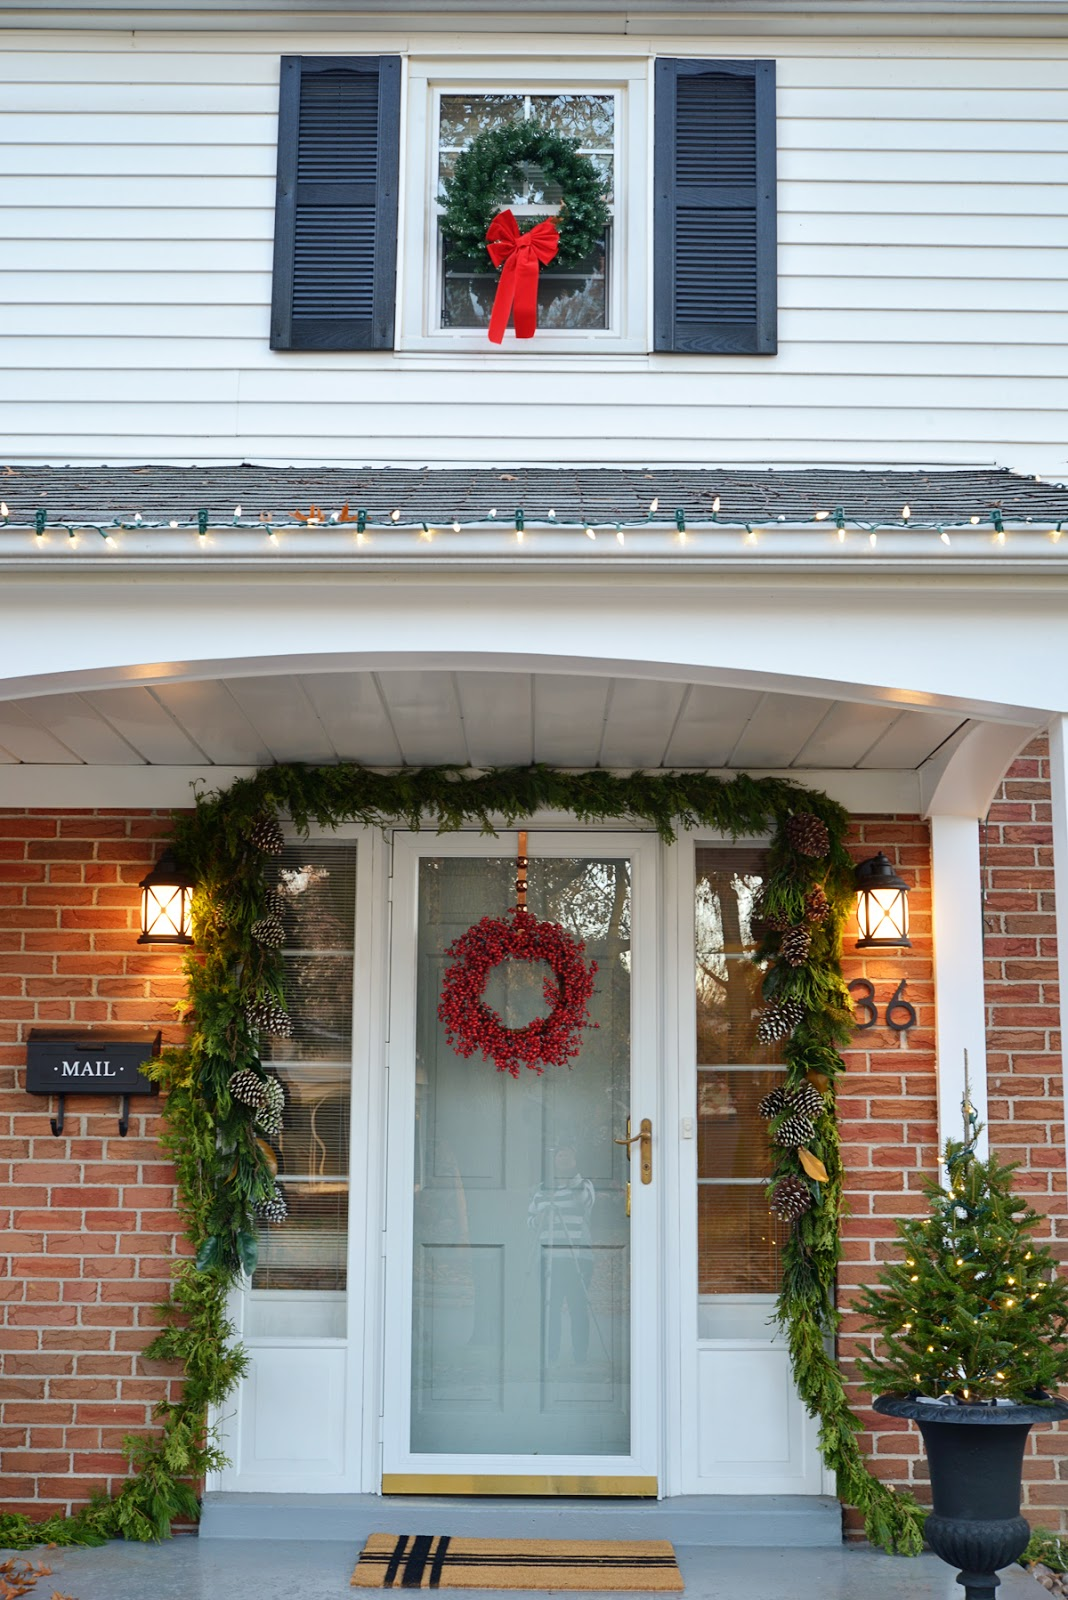 red brick classic house, christmas garland around door, coastal outdoor lighting, mailbox with decal, trees in urn